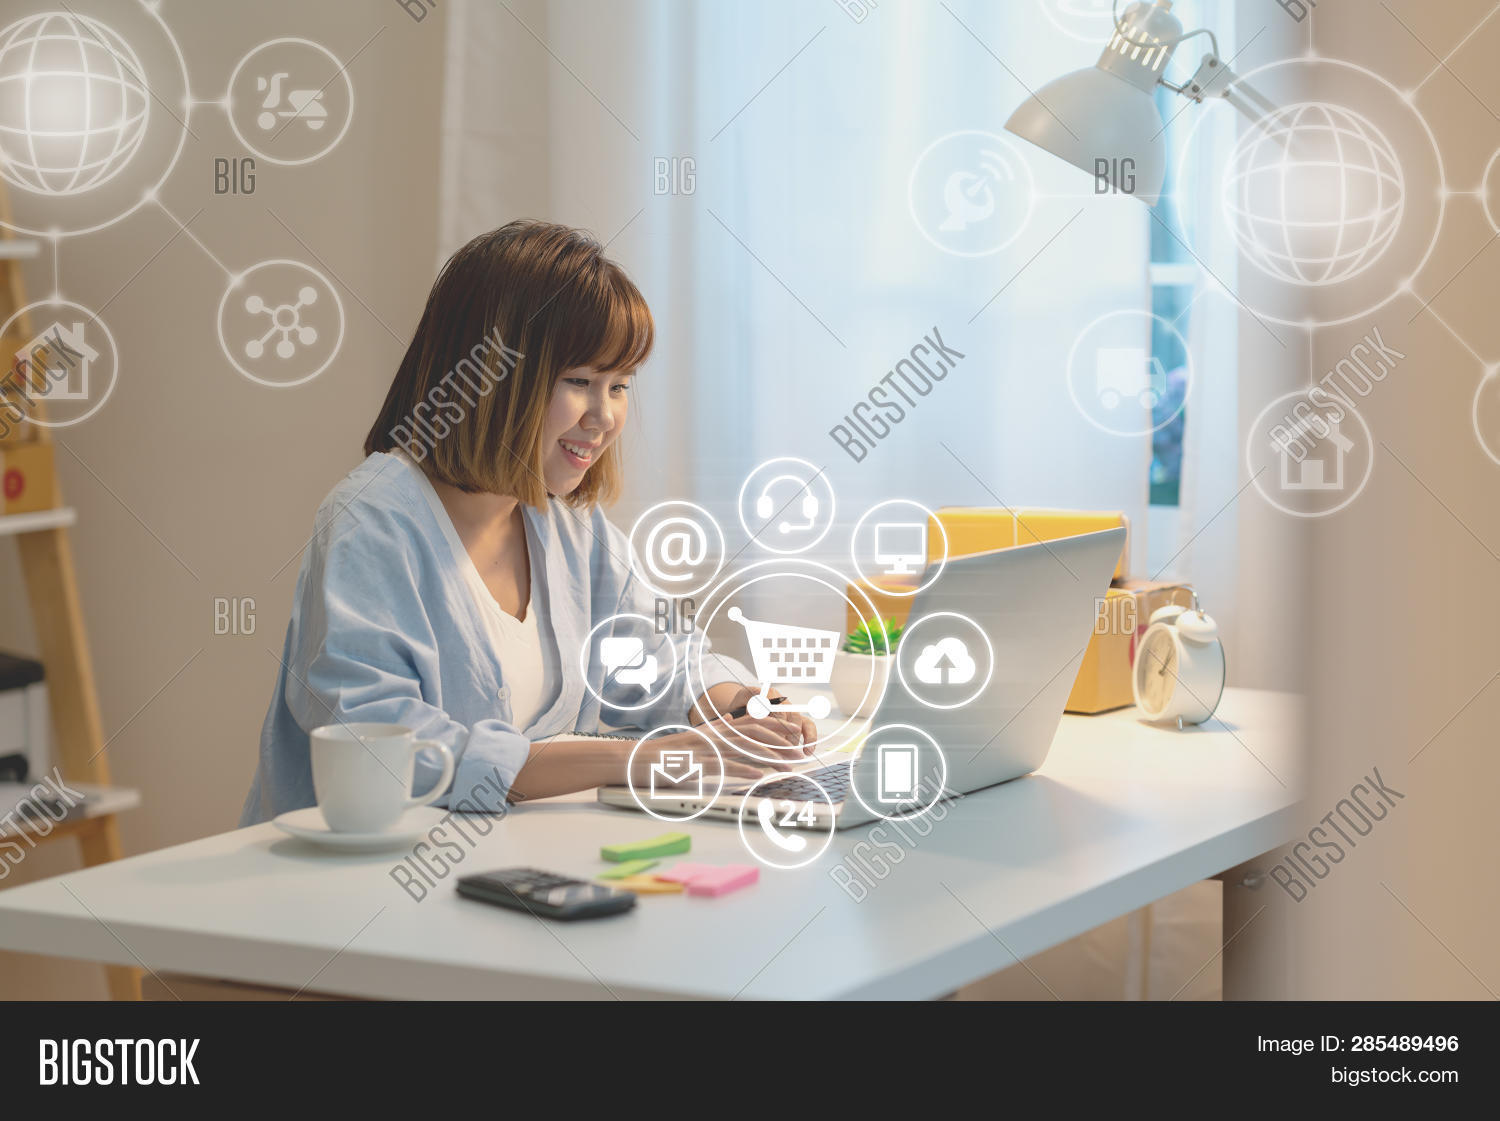 Computer,Laptop,app,banking,business,channel,commerce,communication,concept,connect,connection,crm,customer,data,digital,ecommerce,enterprise,experience,future,global,happy,icon,information,internet,iot,marketing,media,mobile,modern,multichannel,network,omni,omnichannel,online,payment,phone,relationship,retail,satisfied,security,service,shopping,smart,social,technology,using,web,website,work,worldwide